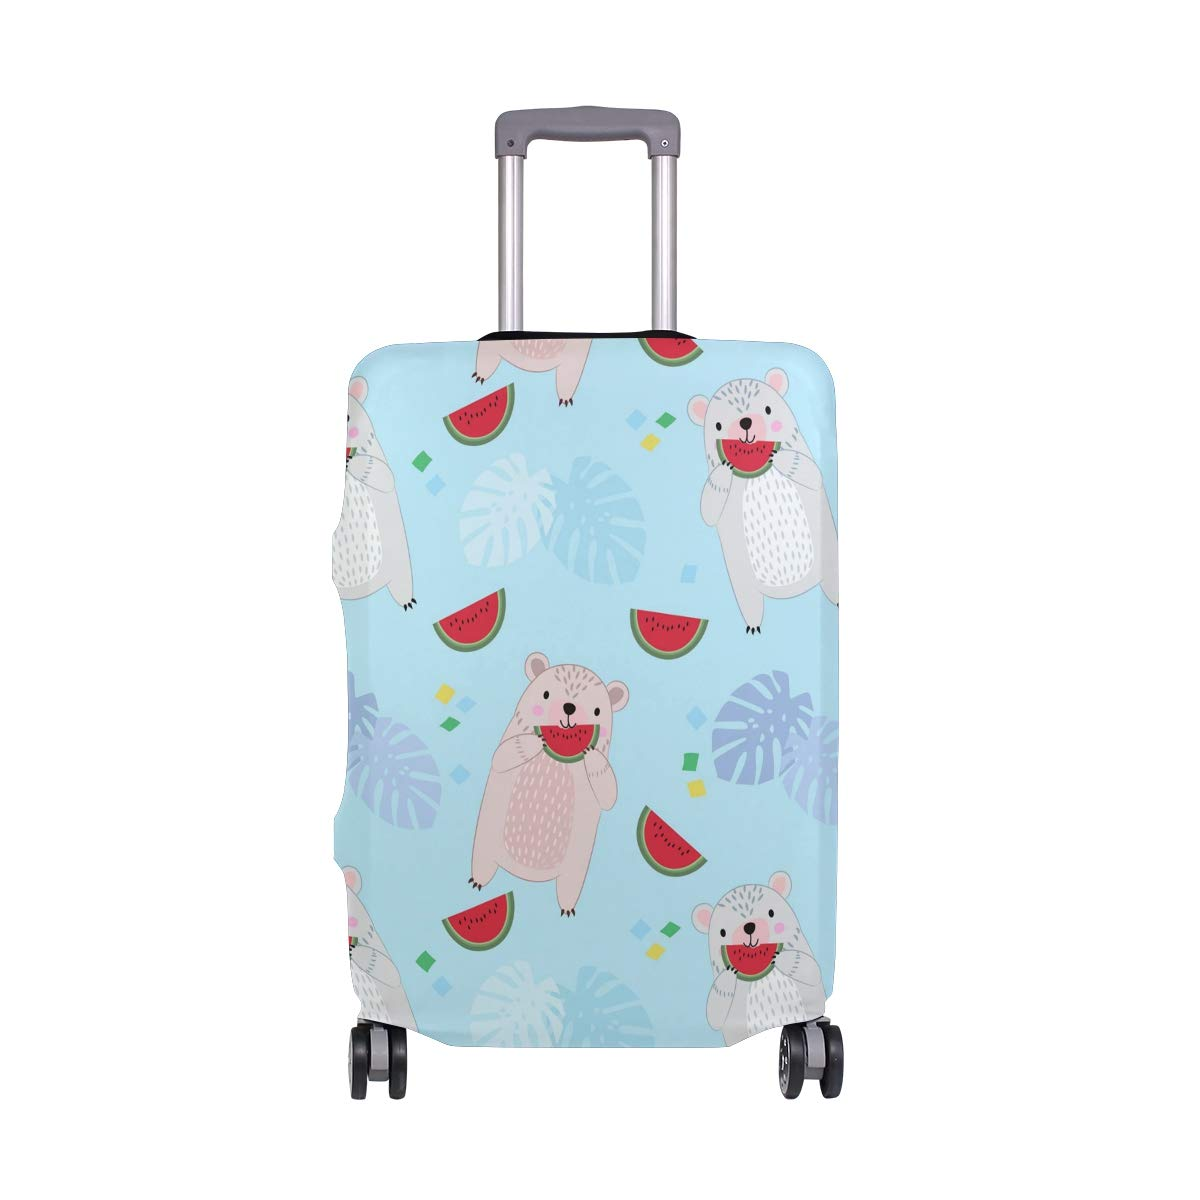 Travel Luggage Cover Cute Cartoon Animal Bear Water Melon Elastic Suitcase Protector Washable Baggage Covers Fits 18-32 inch